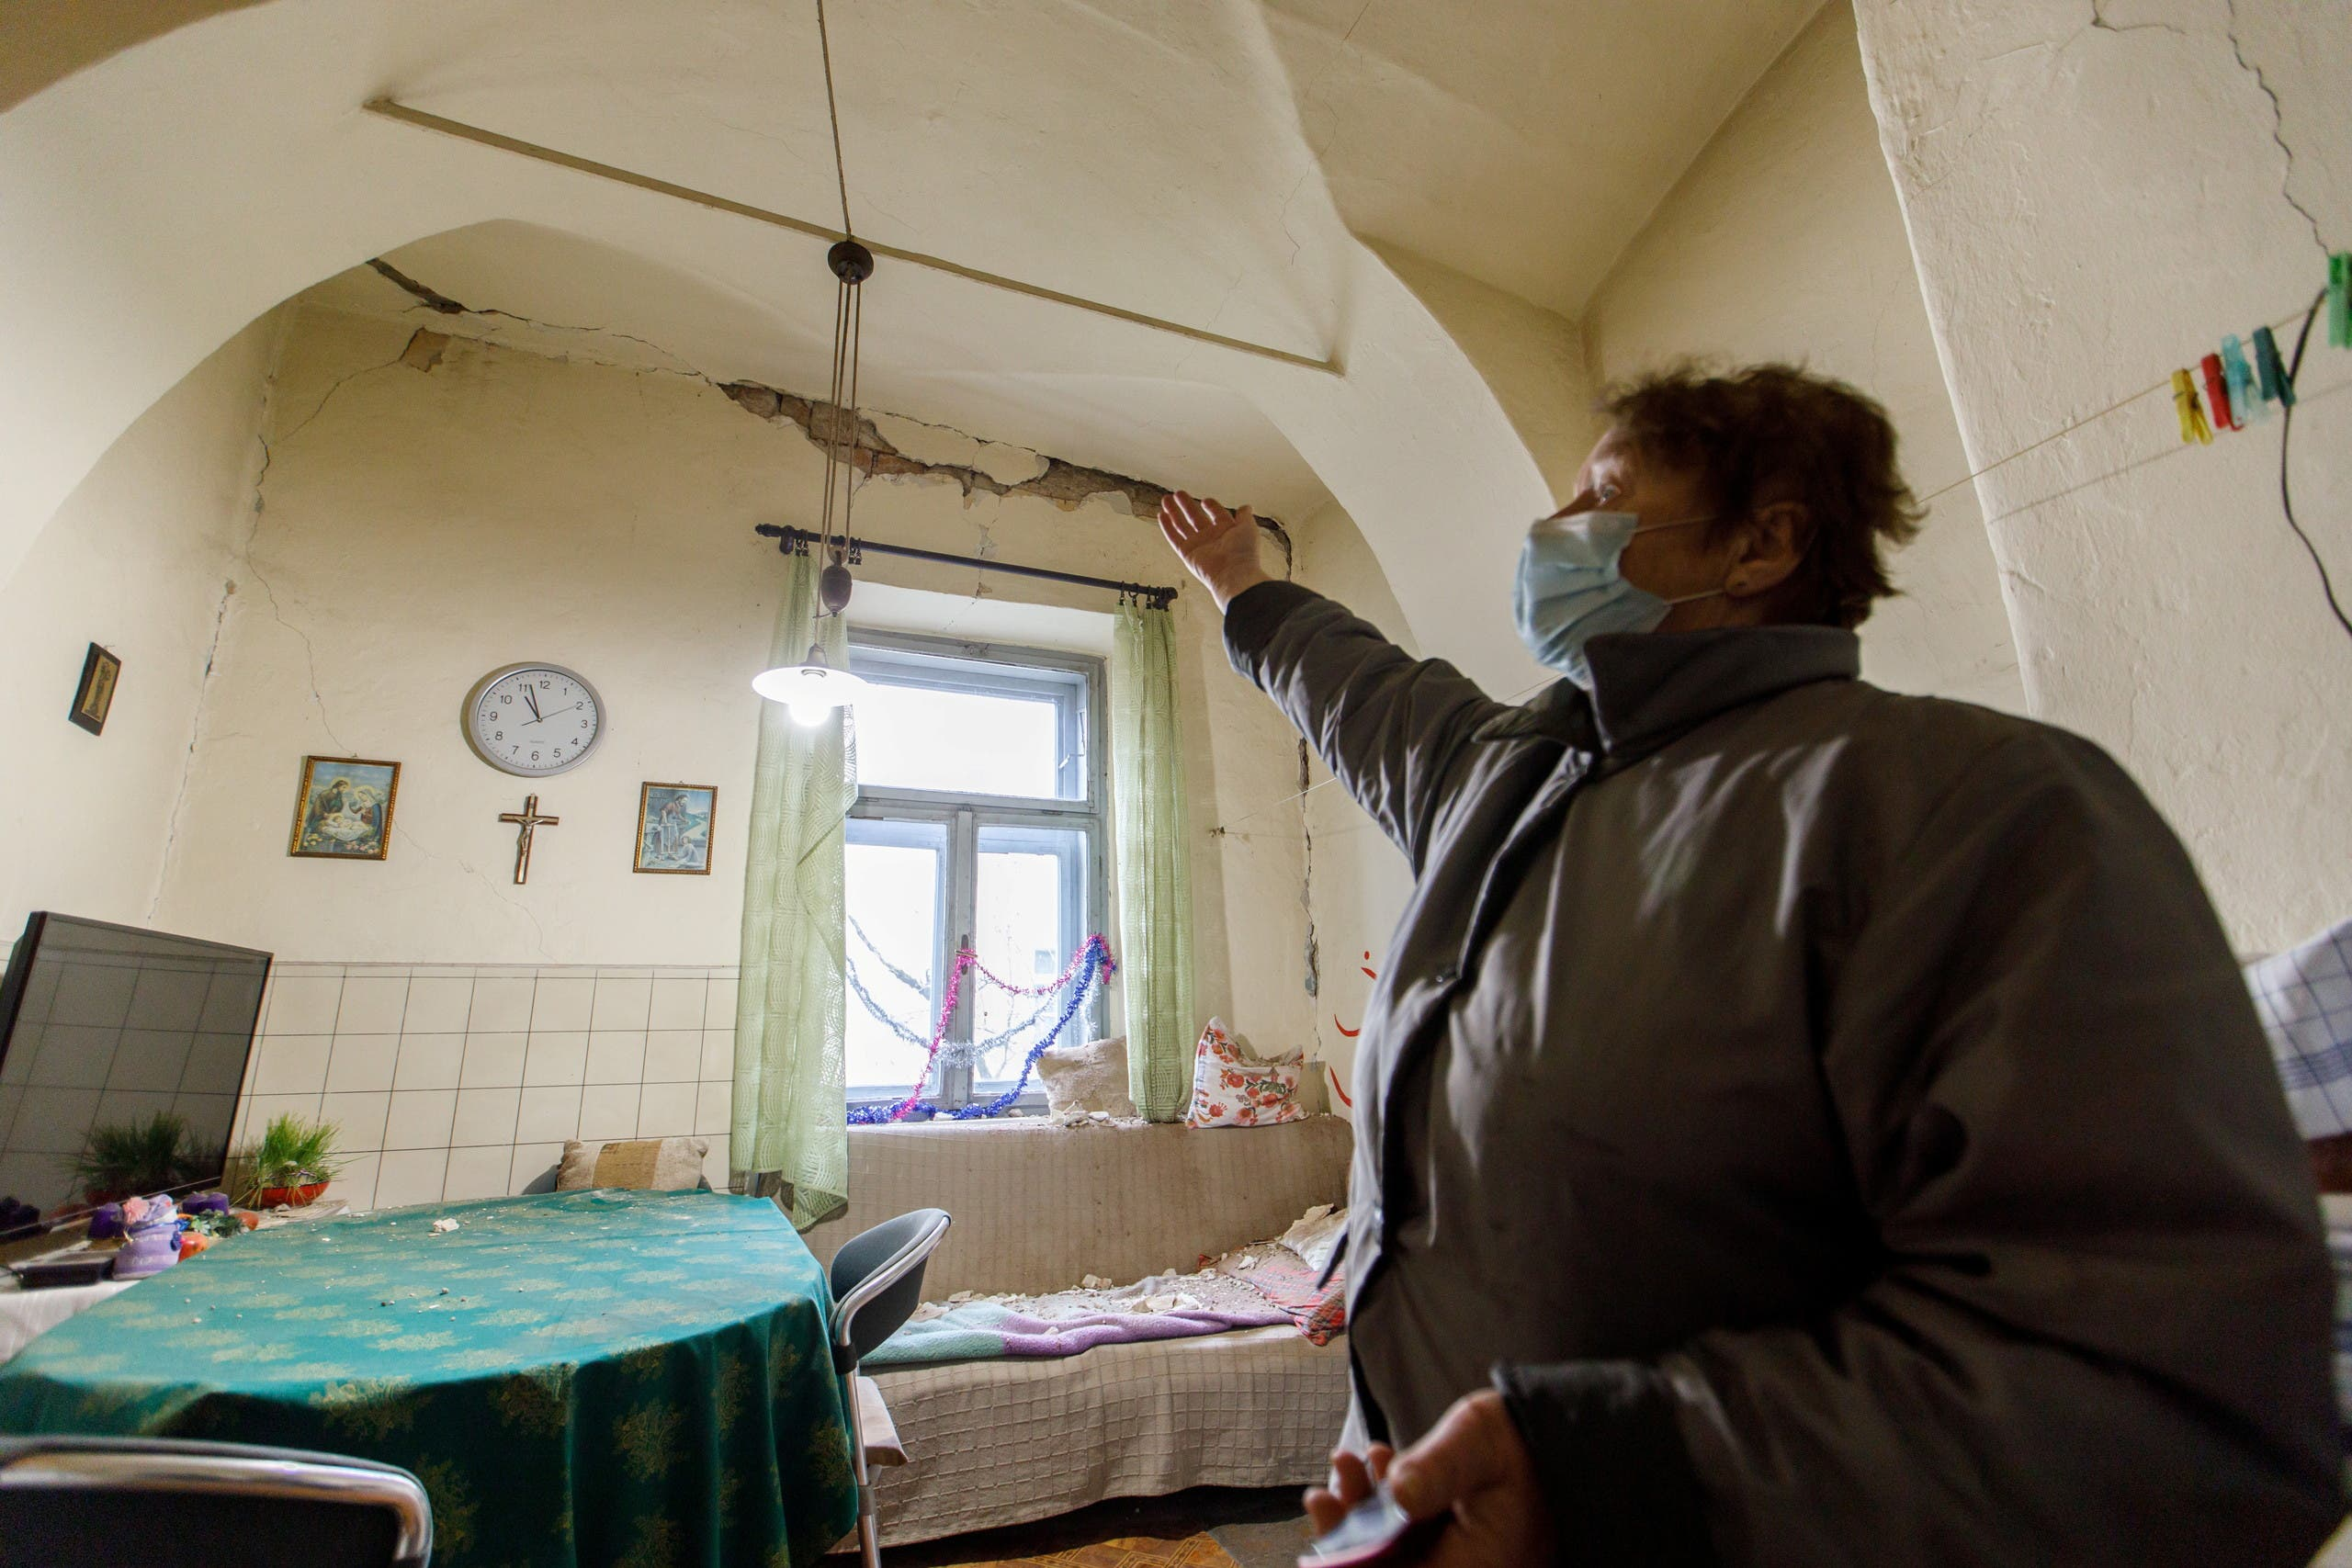 Ankica Loncarevic shows damages in her home after a 5.2 magnitude earthquake in Petrinja, Croatia, December 28, 2020. (Reuters)